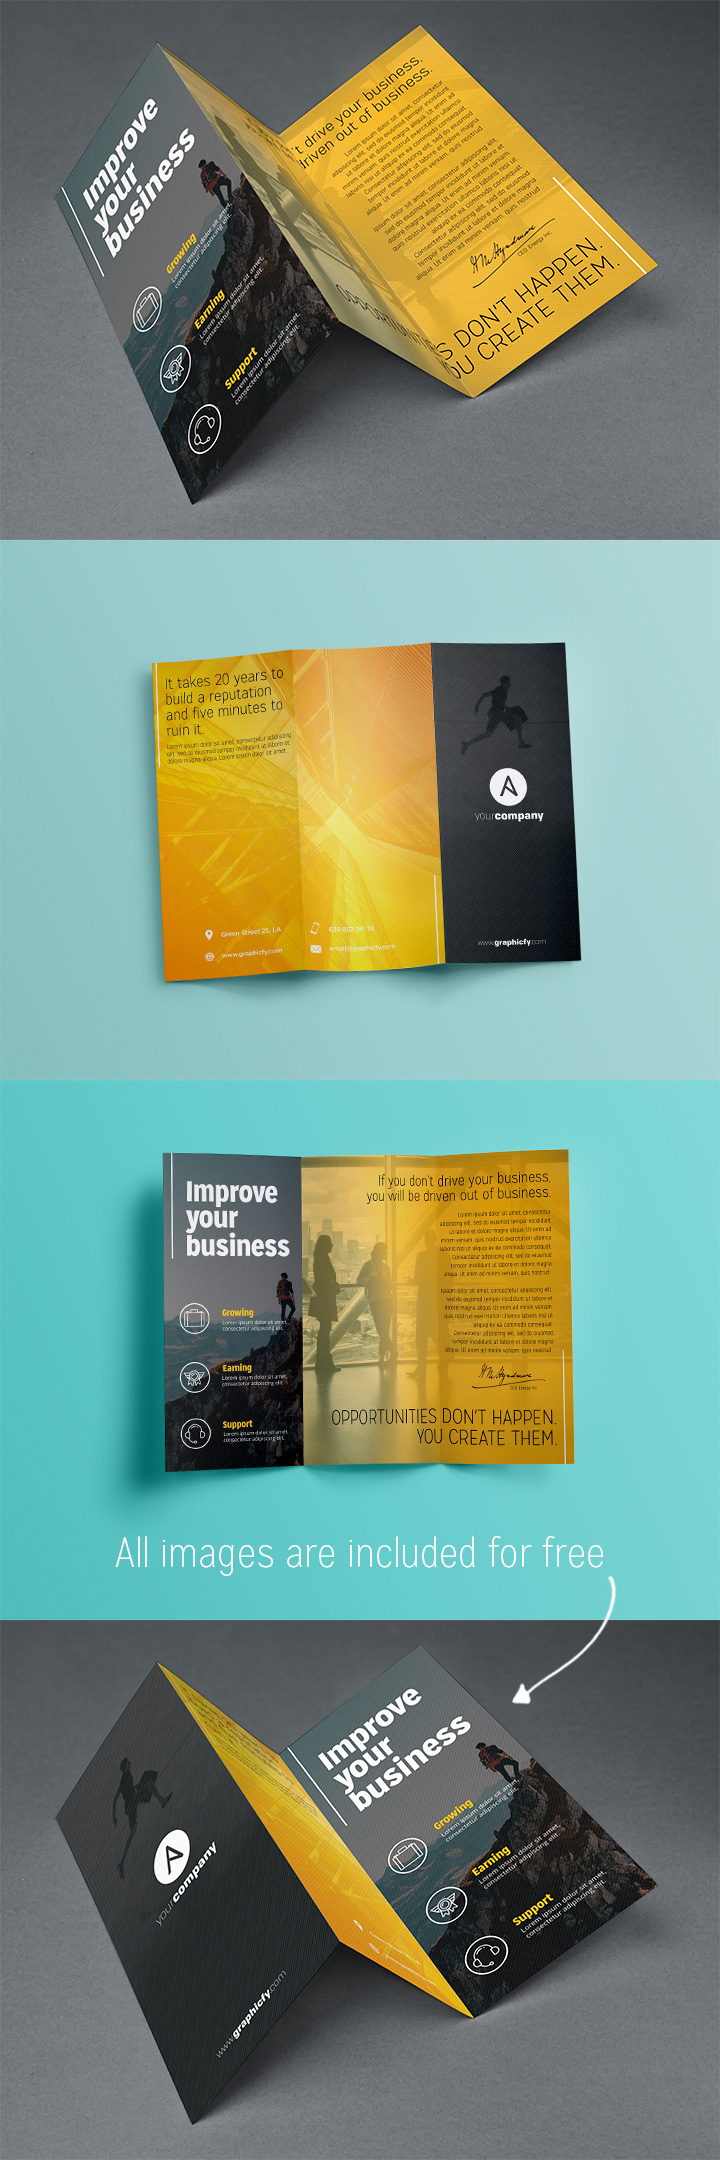 Tri fold brochure template psd brochure templates for Trifold brochure template